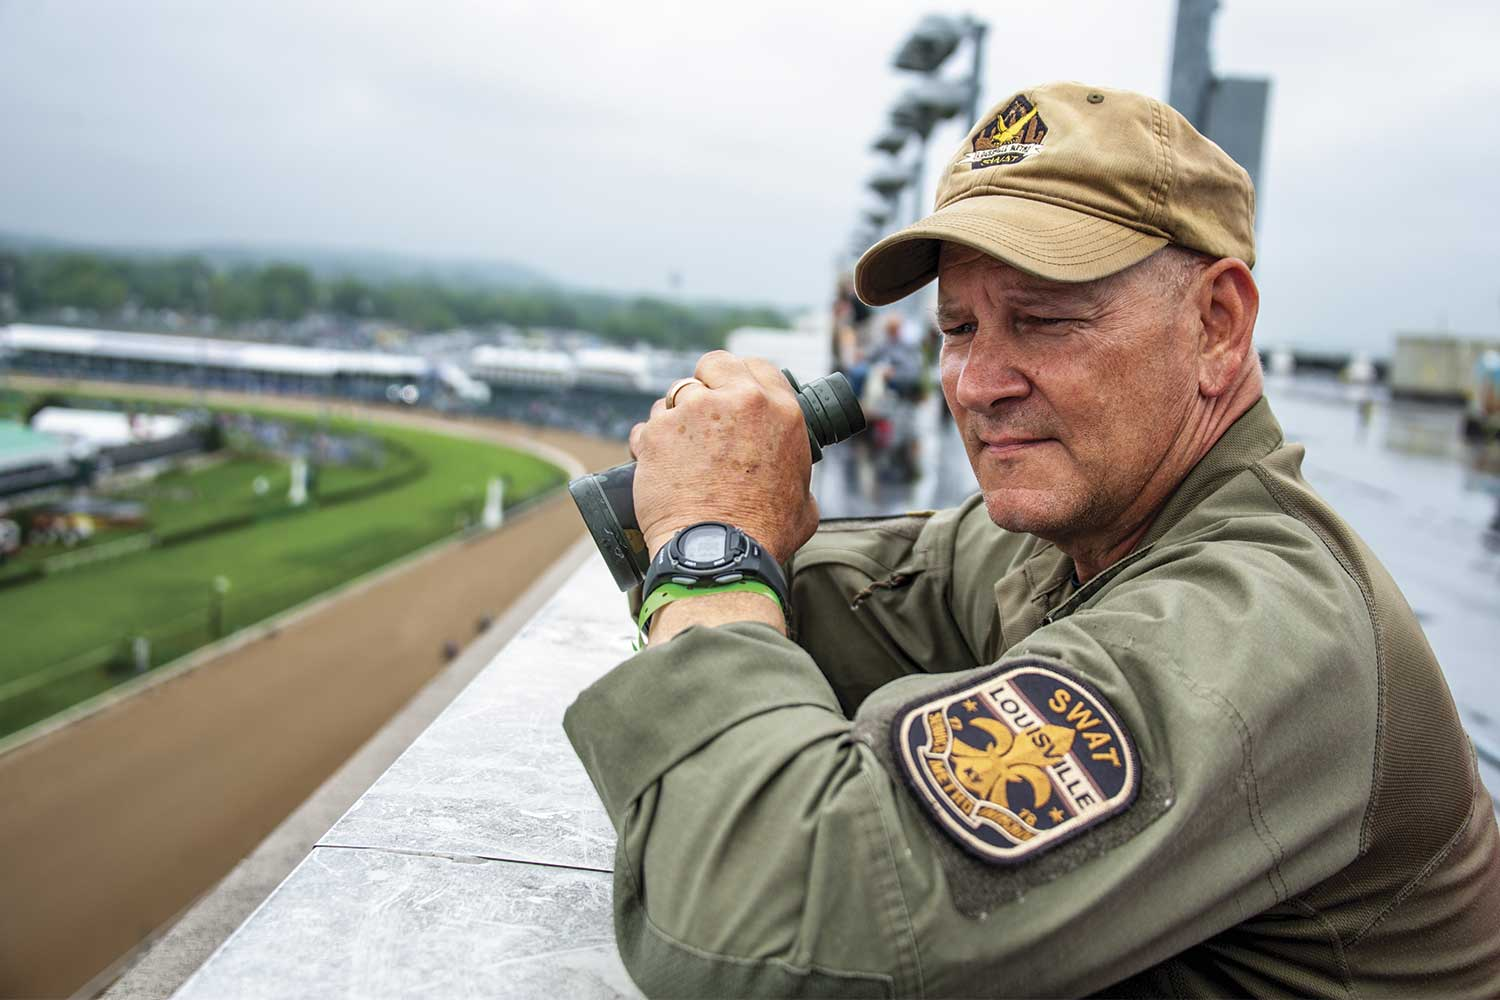 LMPD Sniper John Seymour, better known to most as Gunny, watched over his final Derby. Seymour retired just a few weeks after this year's Derby following 42 years of service to his country and LMPD. (Photo by Jim Robertson)